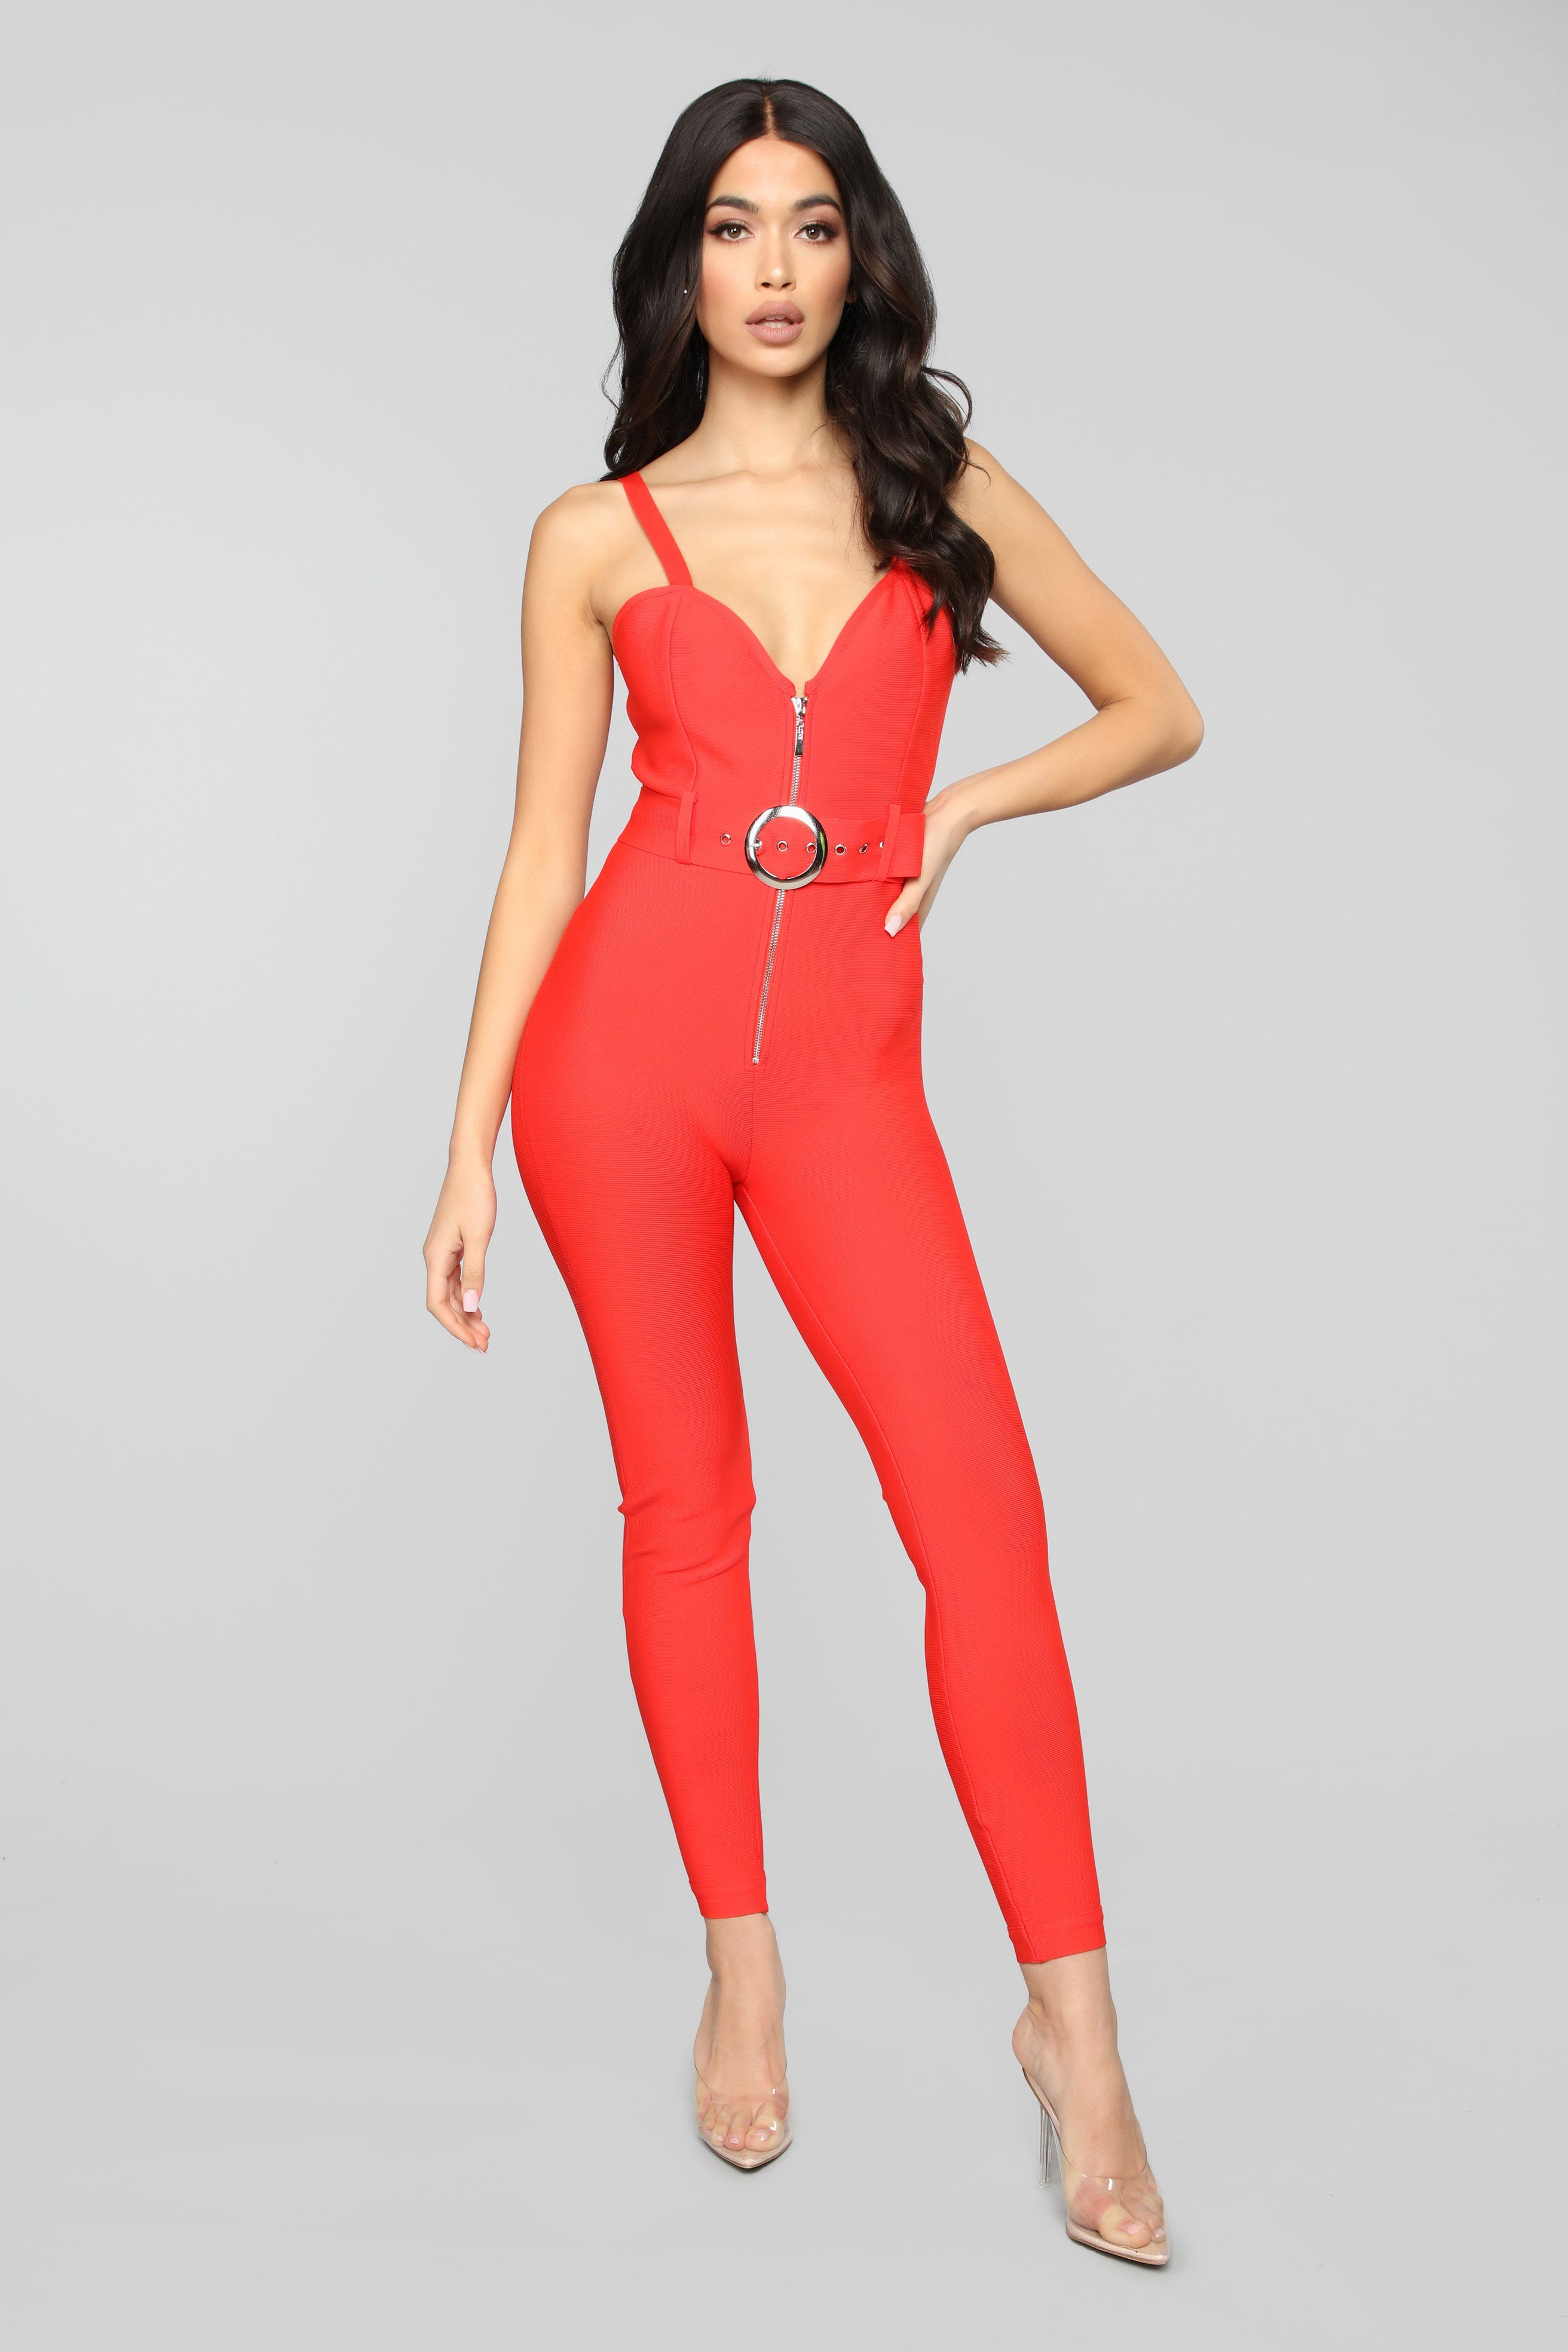 Get Into The Groove Bandage Jumpsuit Red Bandage